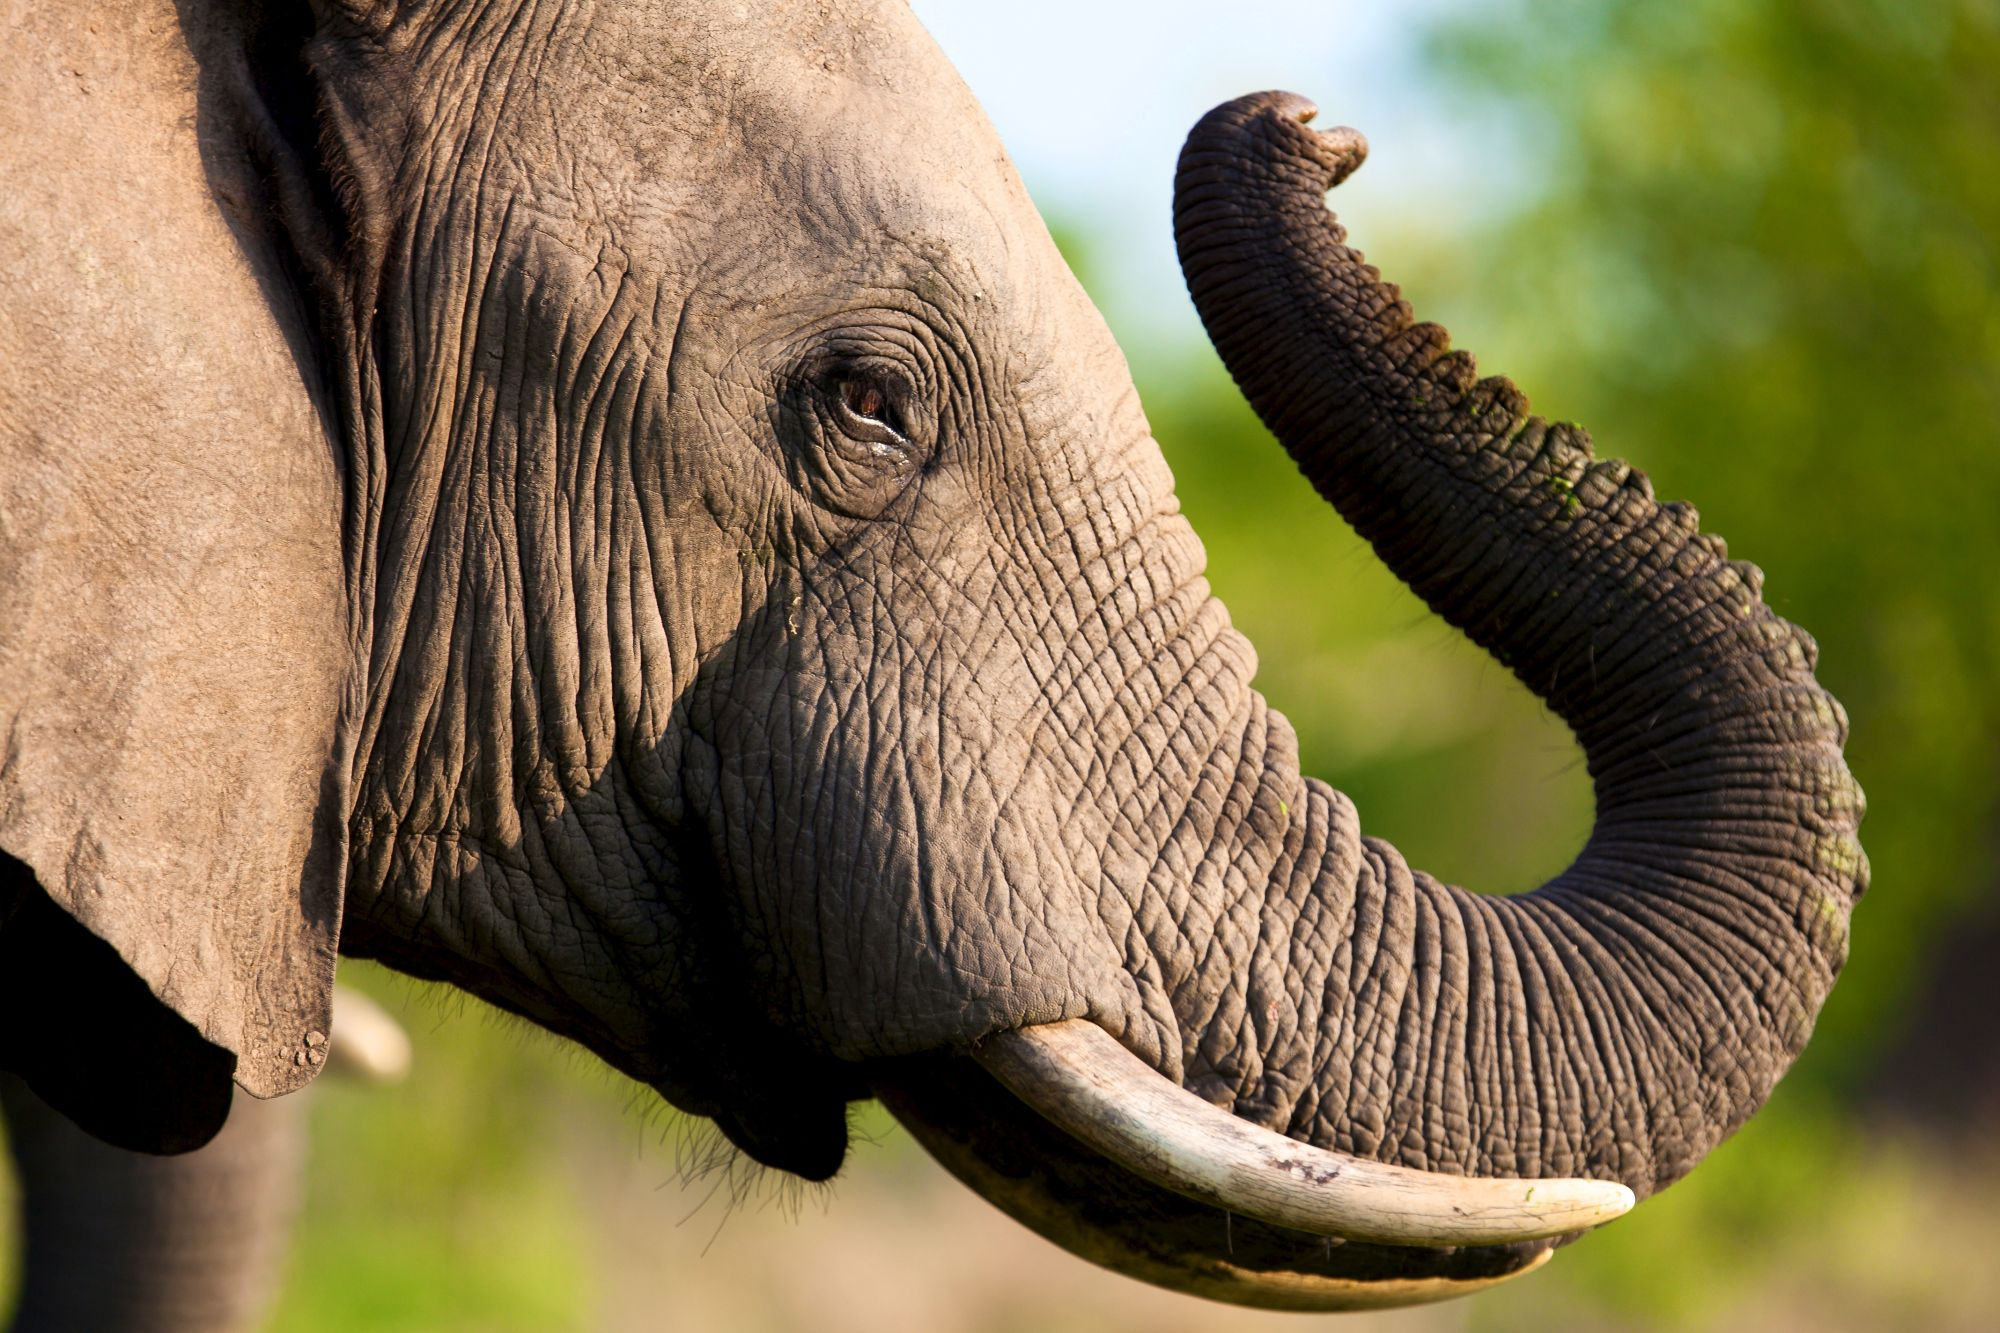 http://www.dreamstime.com/stock-photography-elephant-tusk-thick-skin-strong-image33022852